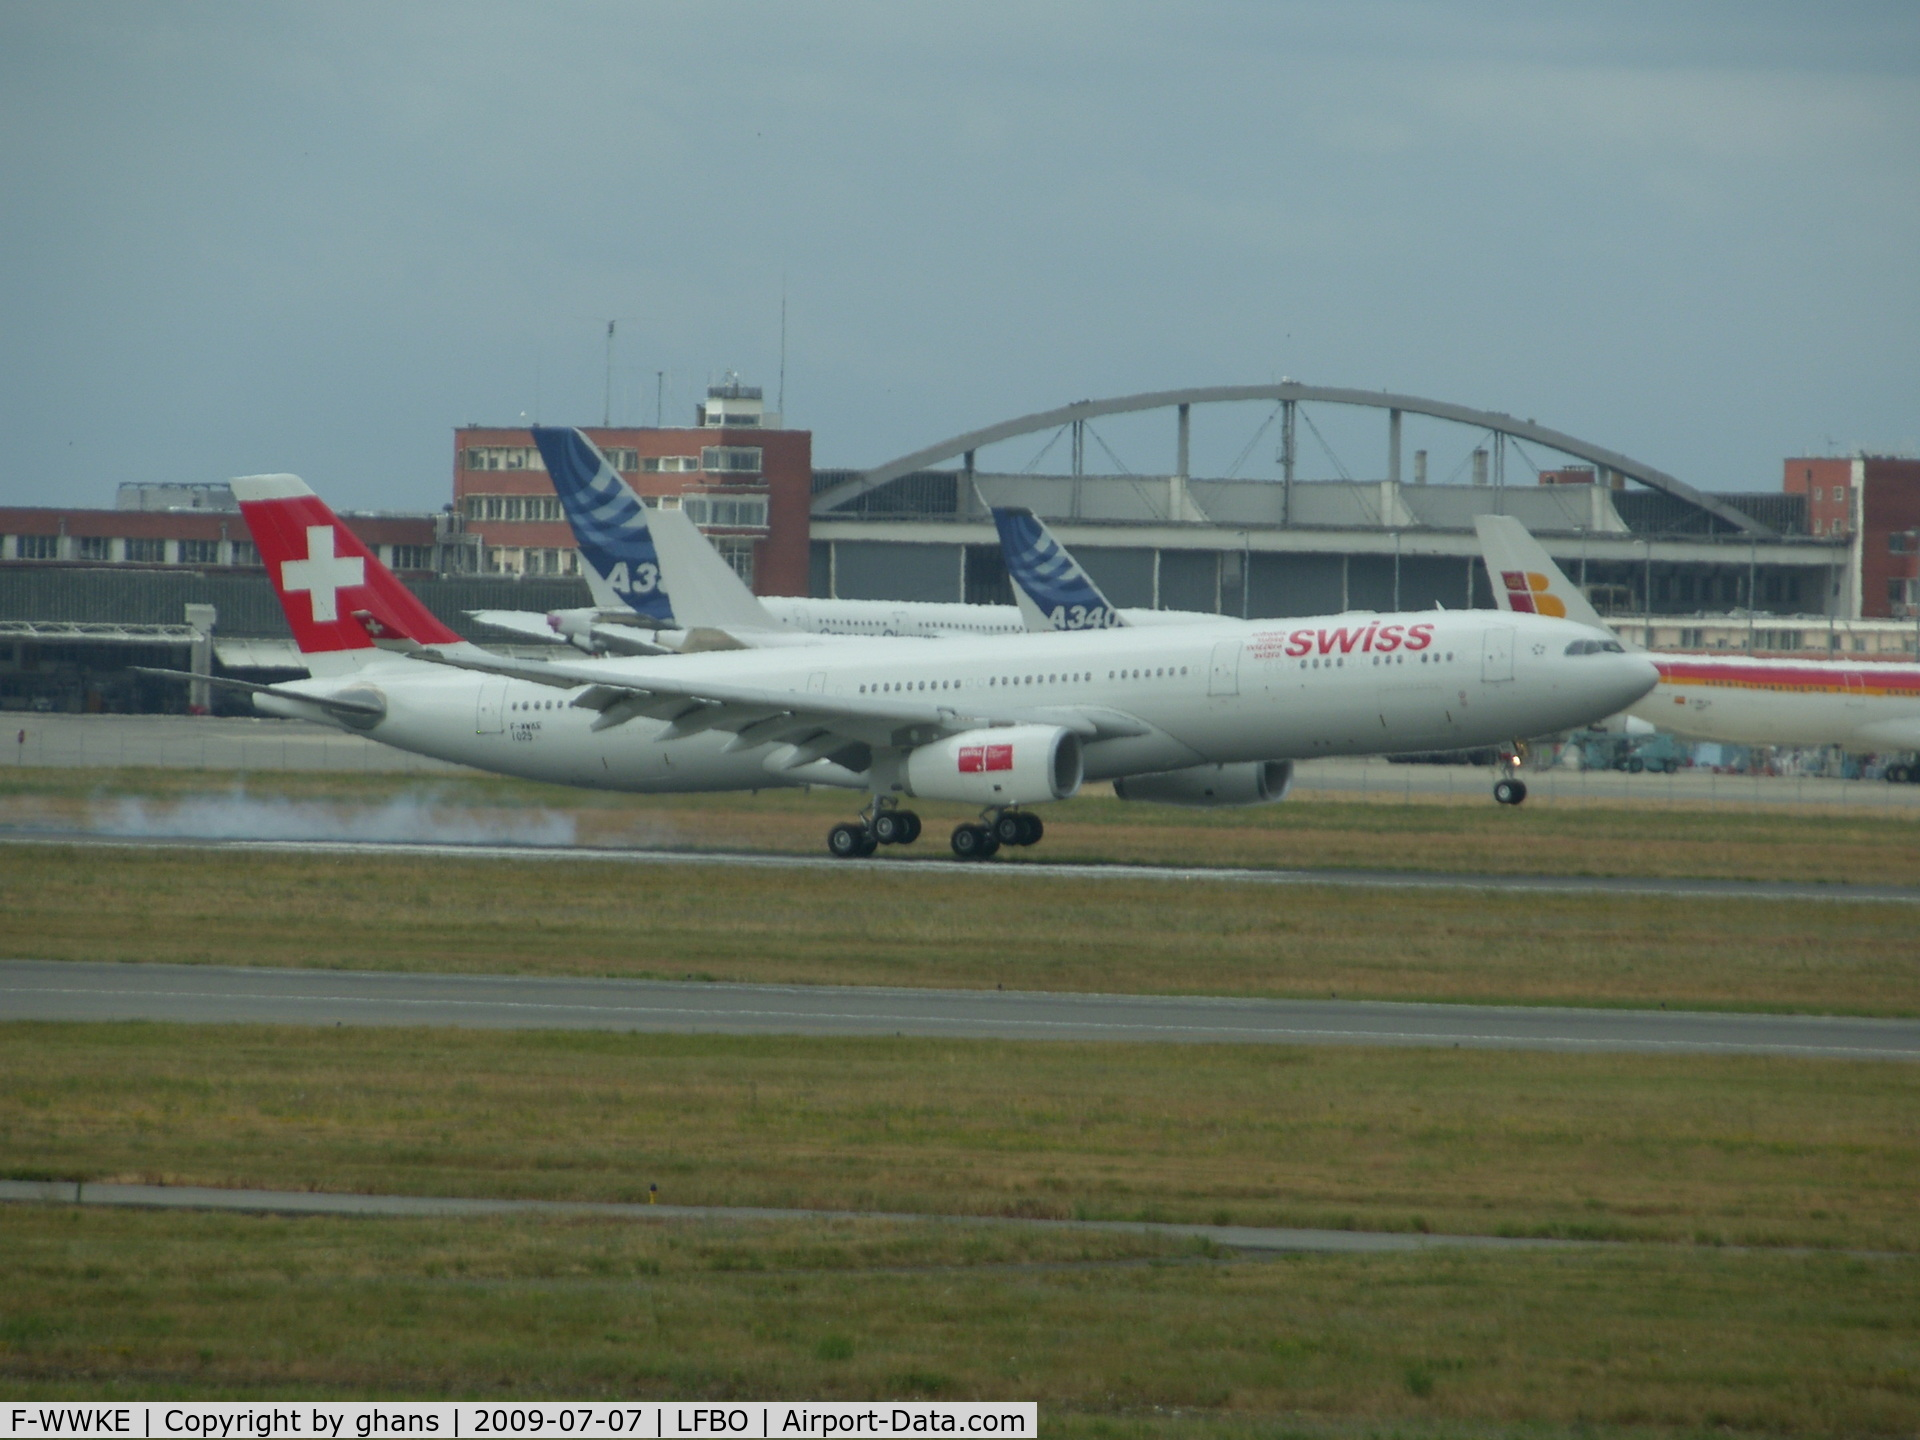 F-WWKE, 2009 Airbus A330-243X C/N 1029, Just landed after a testflight